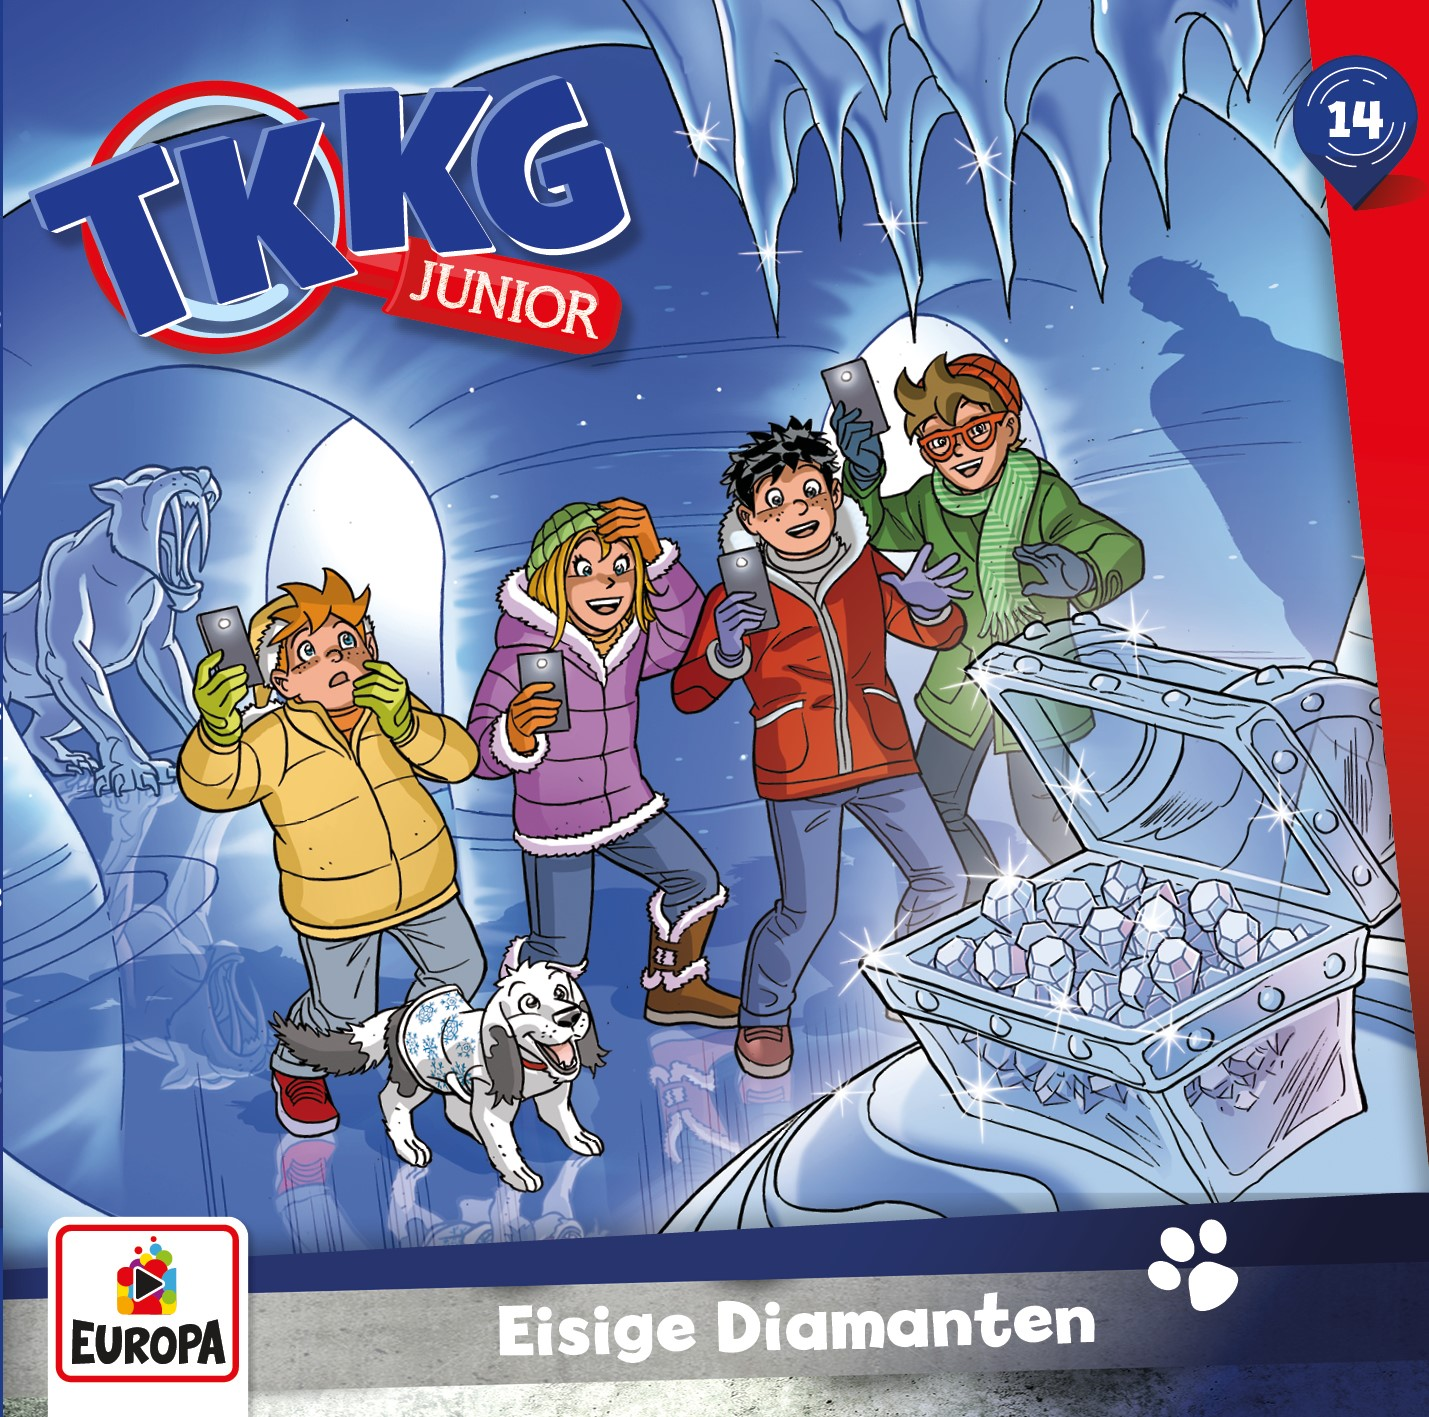 TKKG Junior: Eisige Diamenten